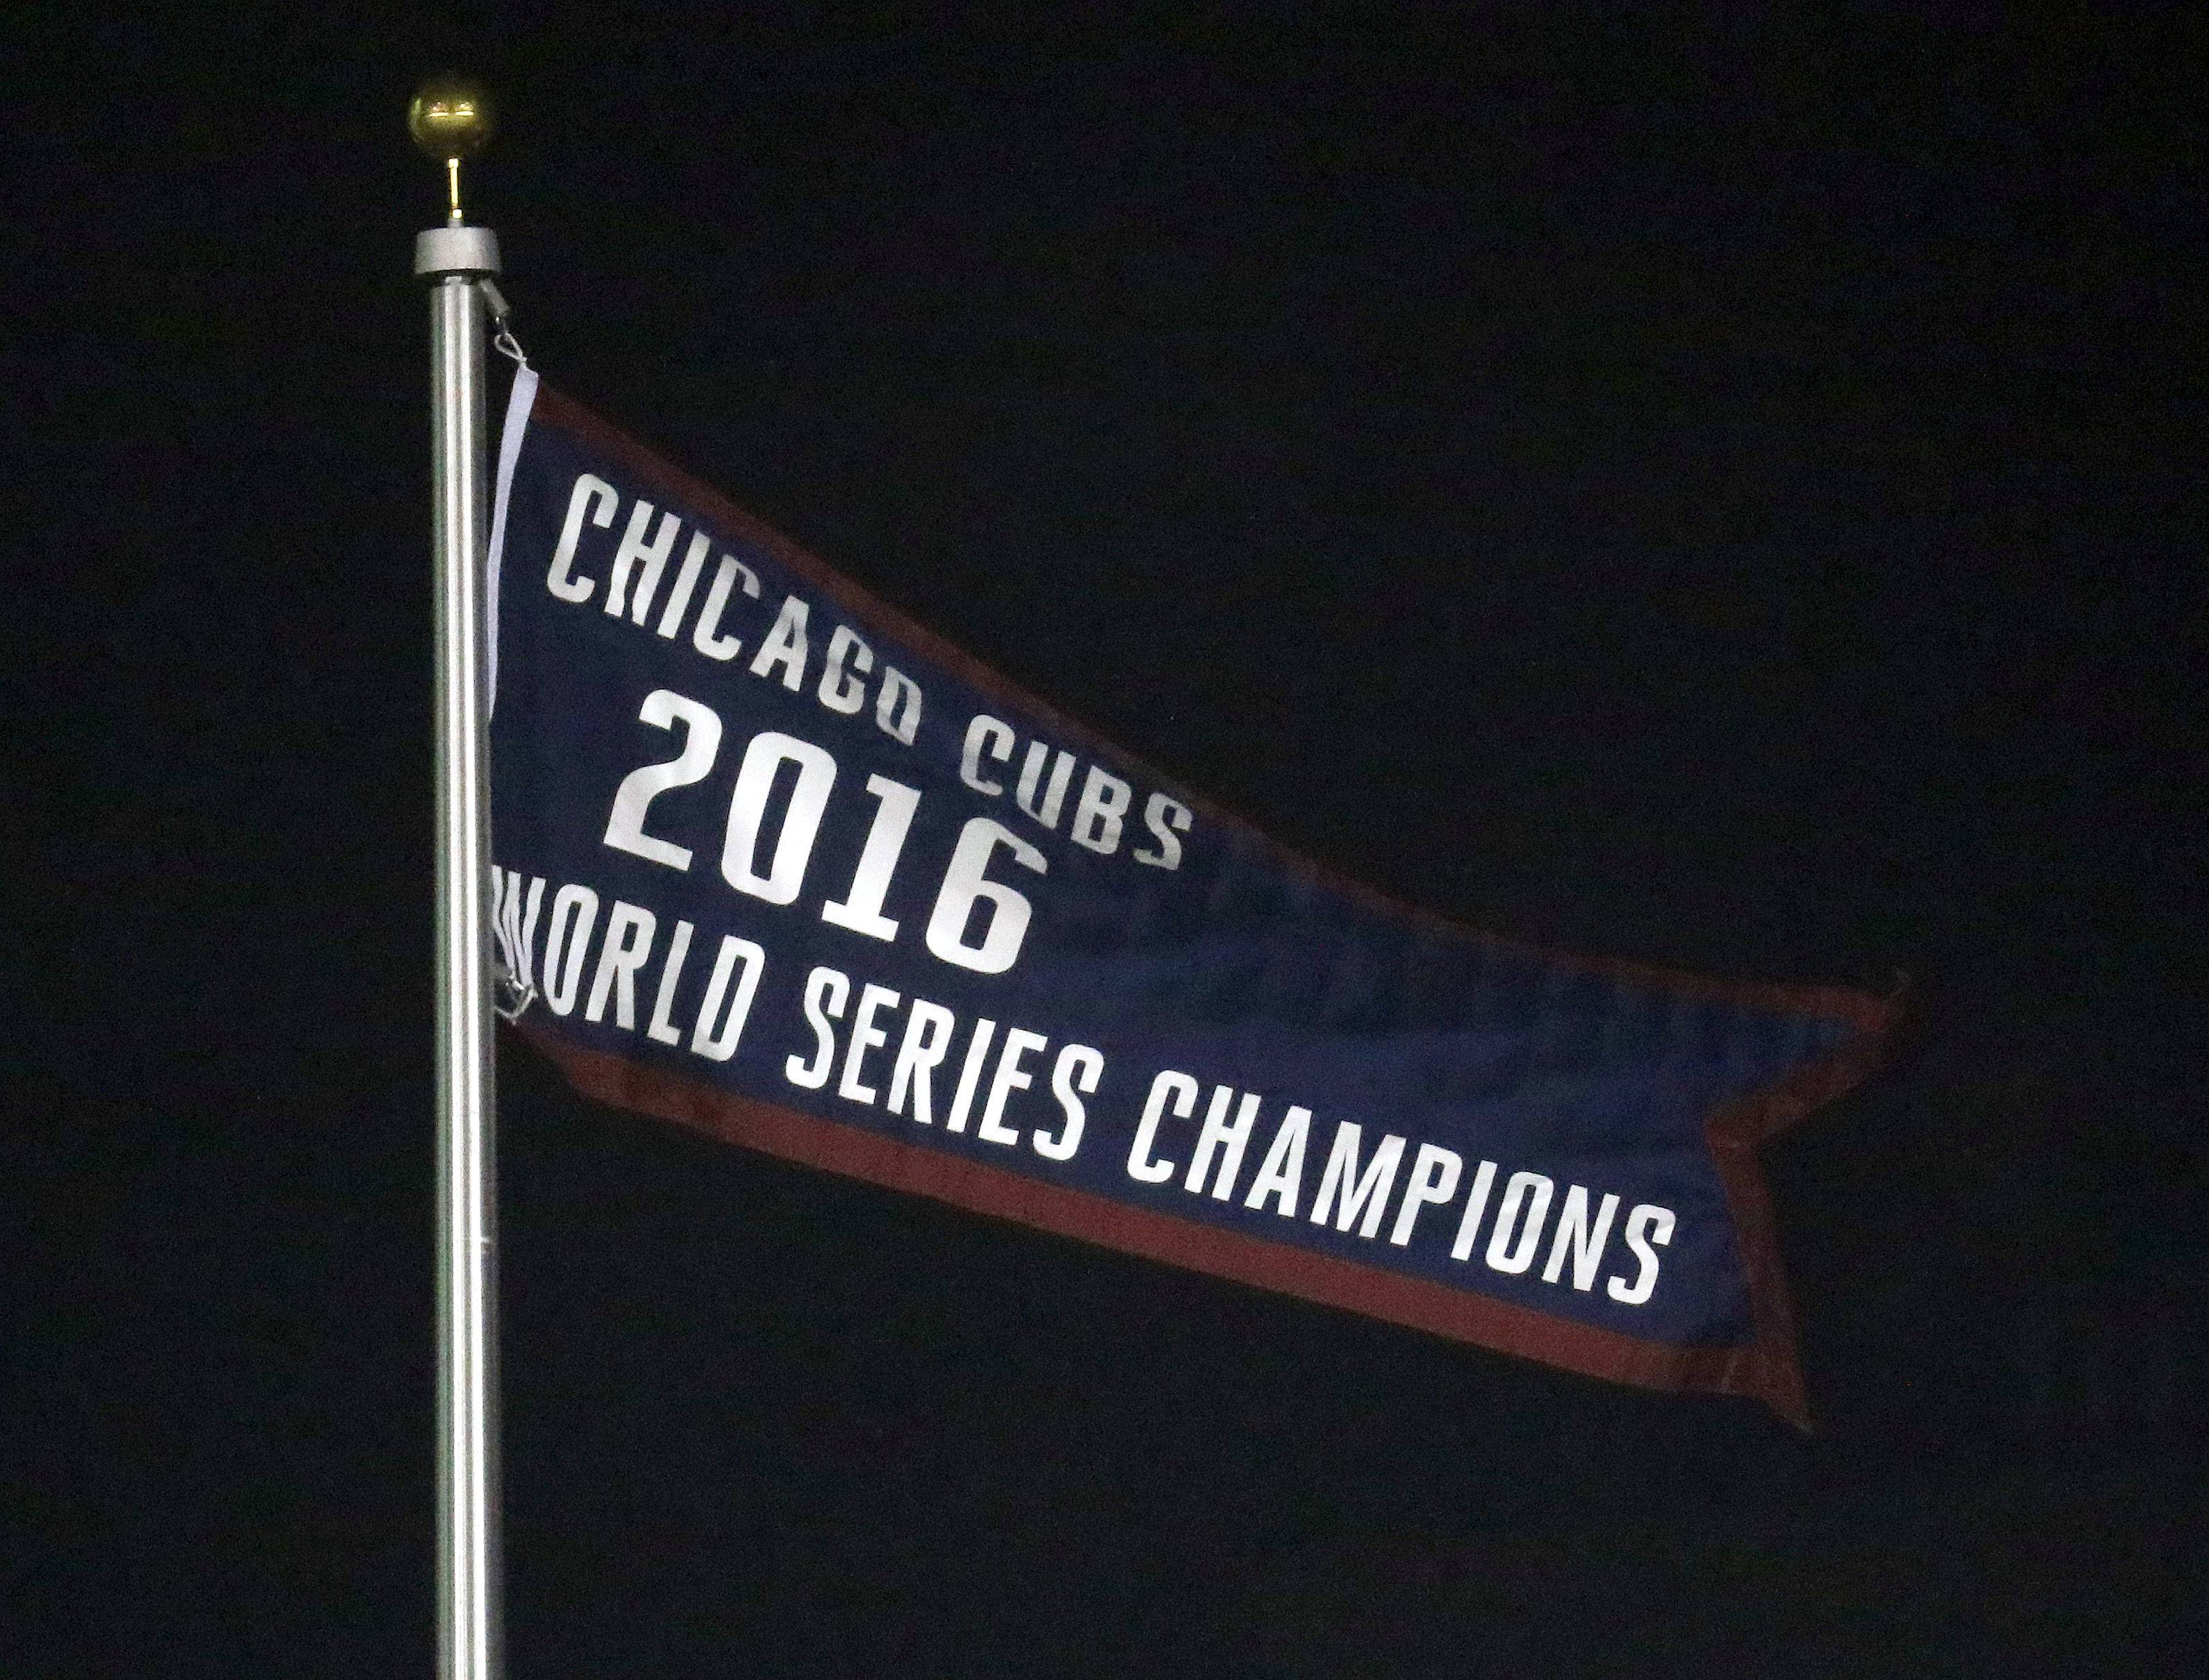 The 2016 World Series championship banner was raised before a night game at Wrigley Field on April 10, 2017. Now the Cubs will play their first Friday night game during the regular season at Wrigley thanks to an agreement with city officials.